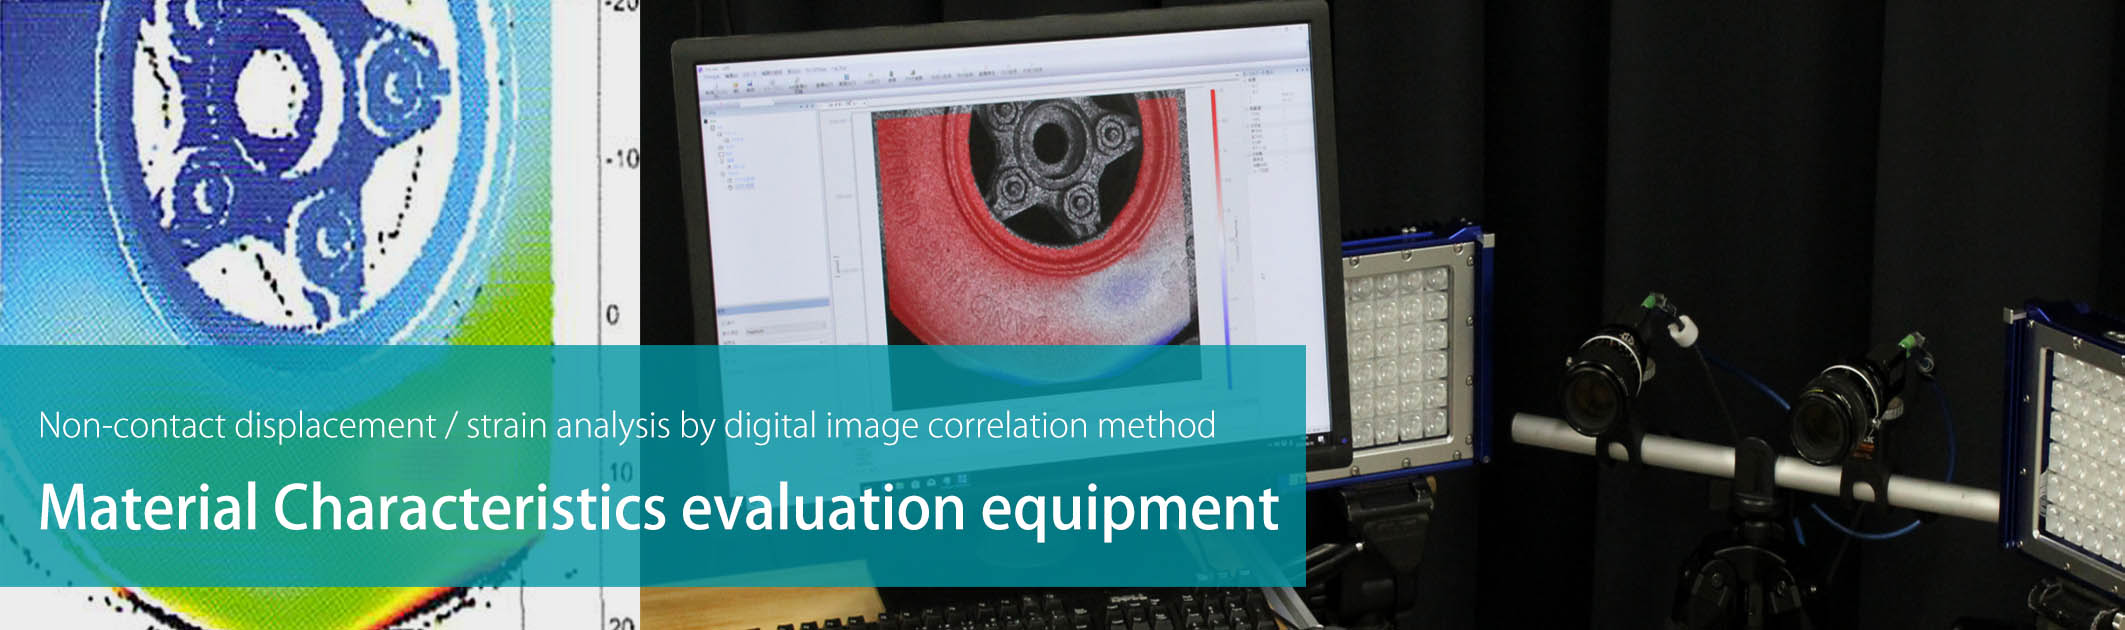 System software for non-contact displacement and distortion measurement using digital image correlation method software. sDIC.